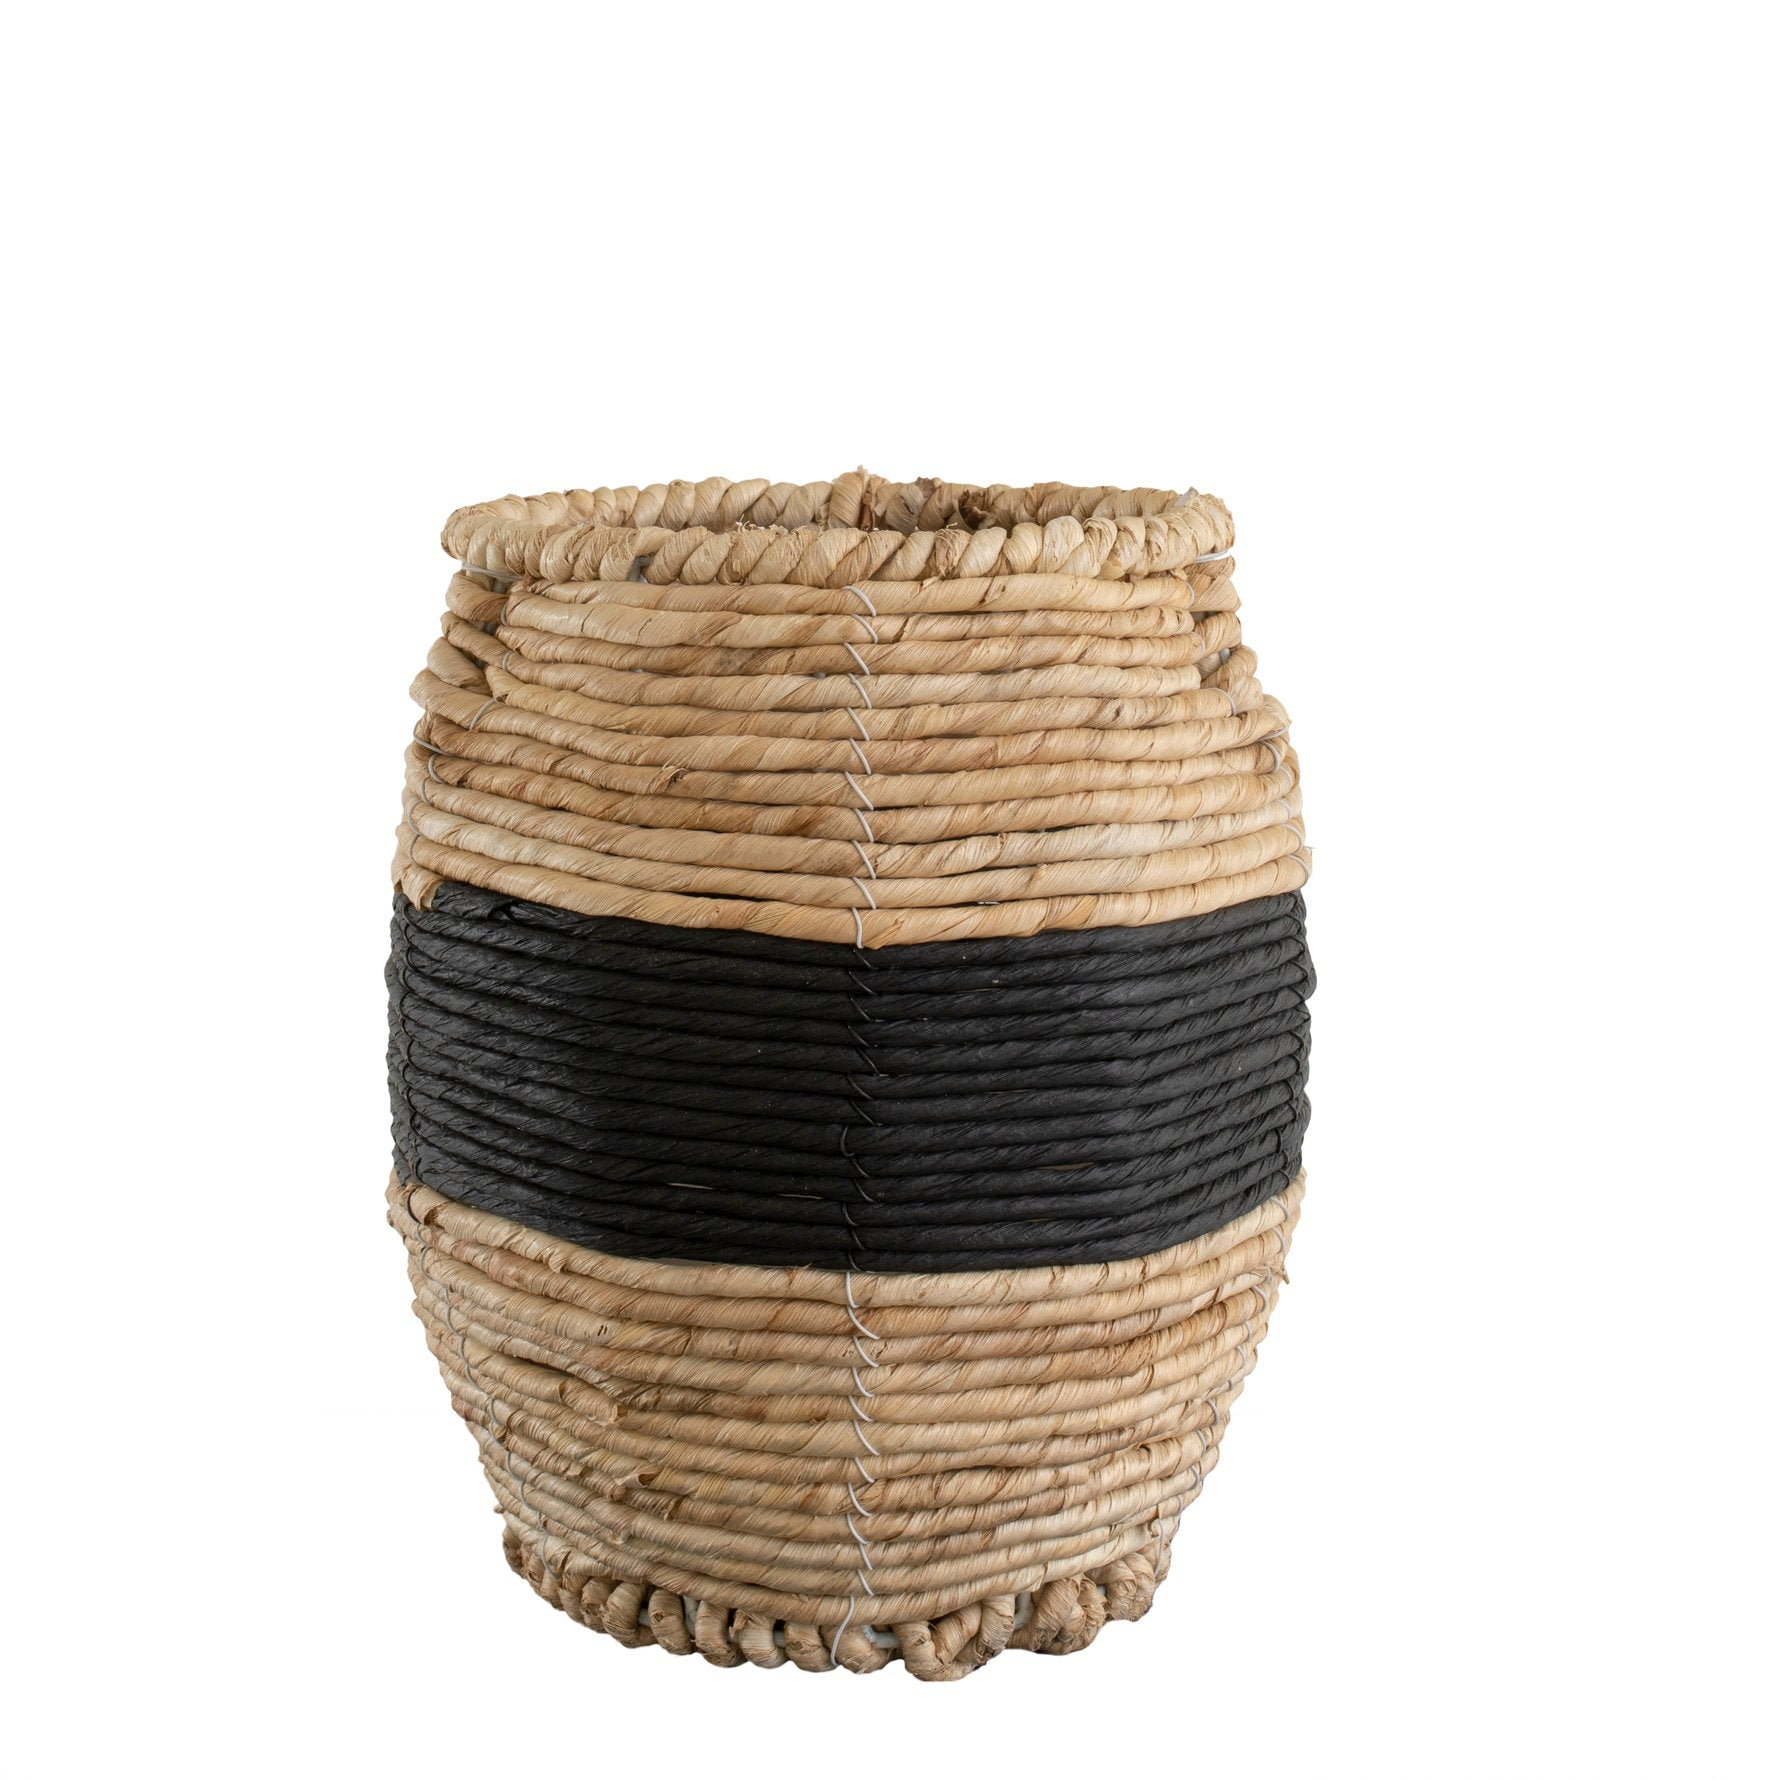 Black Band Woven Basket SMALL